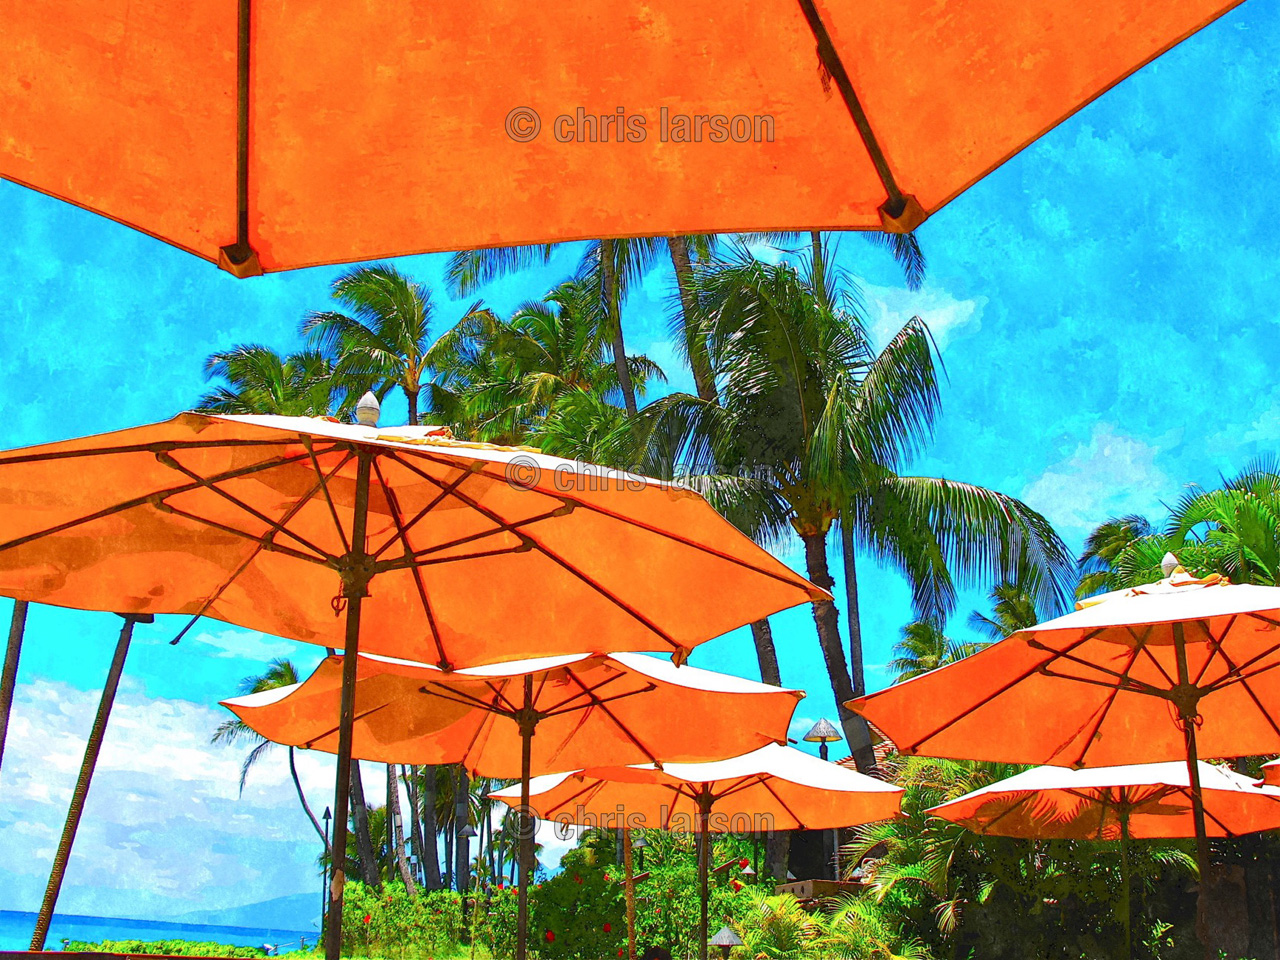 Orange Umbrellas by Chris Larson